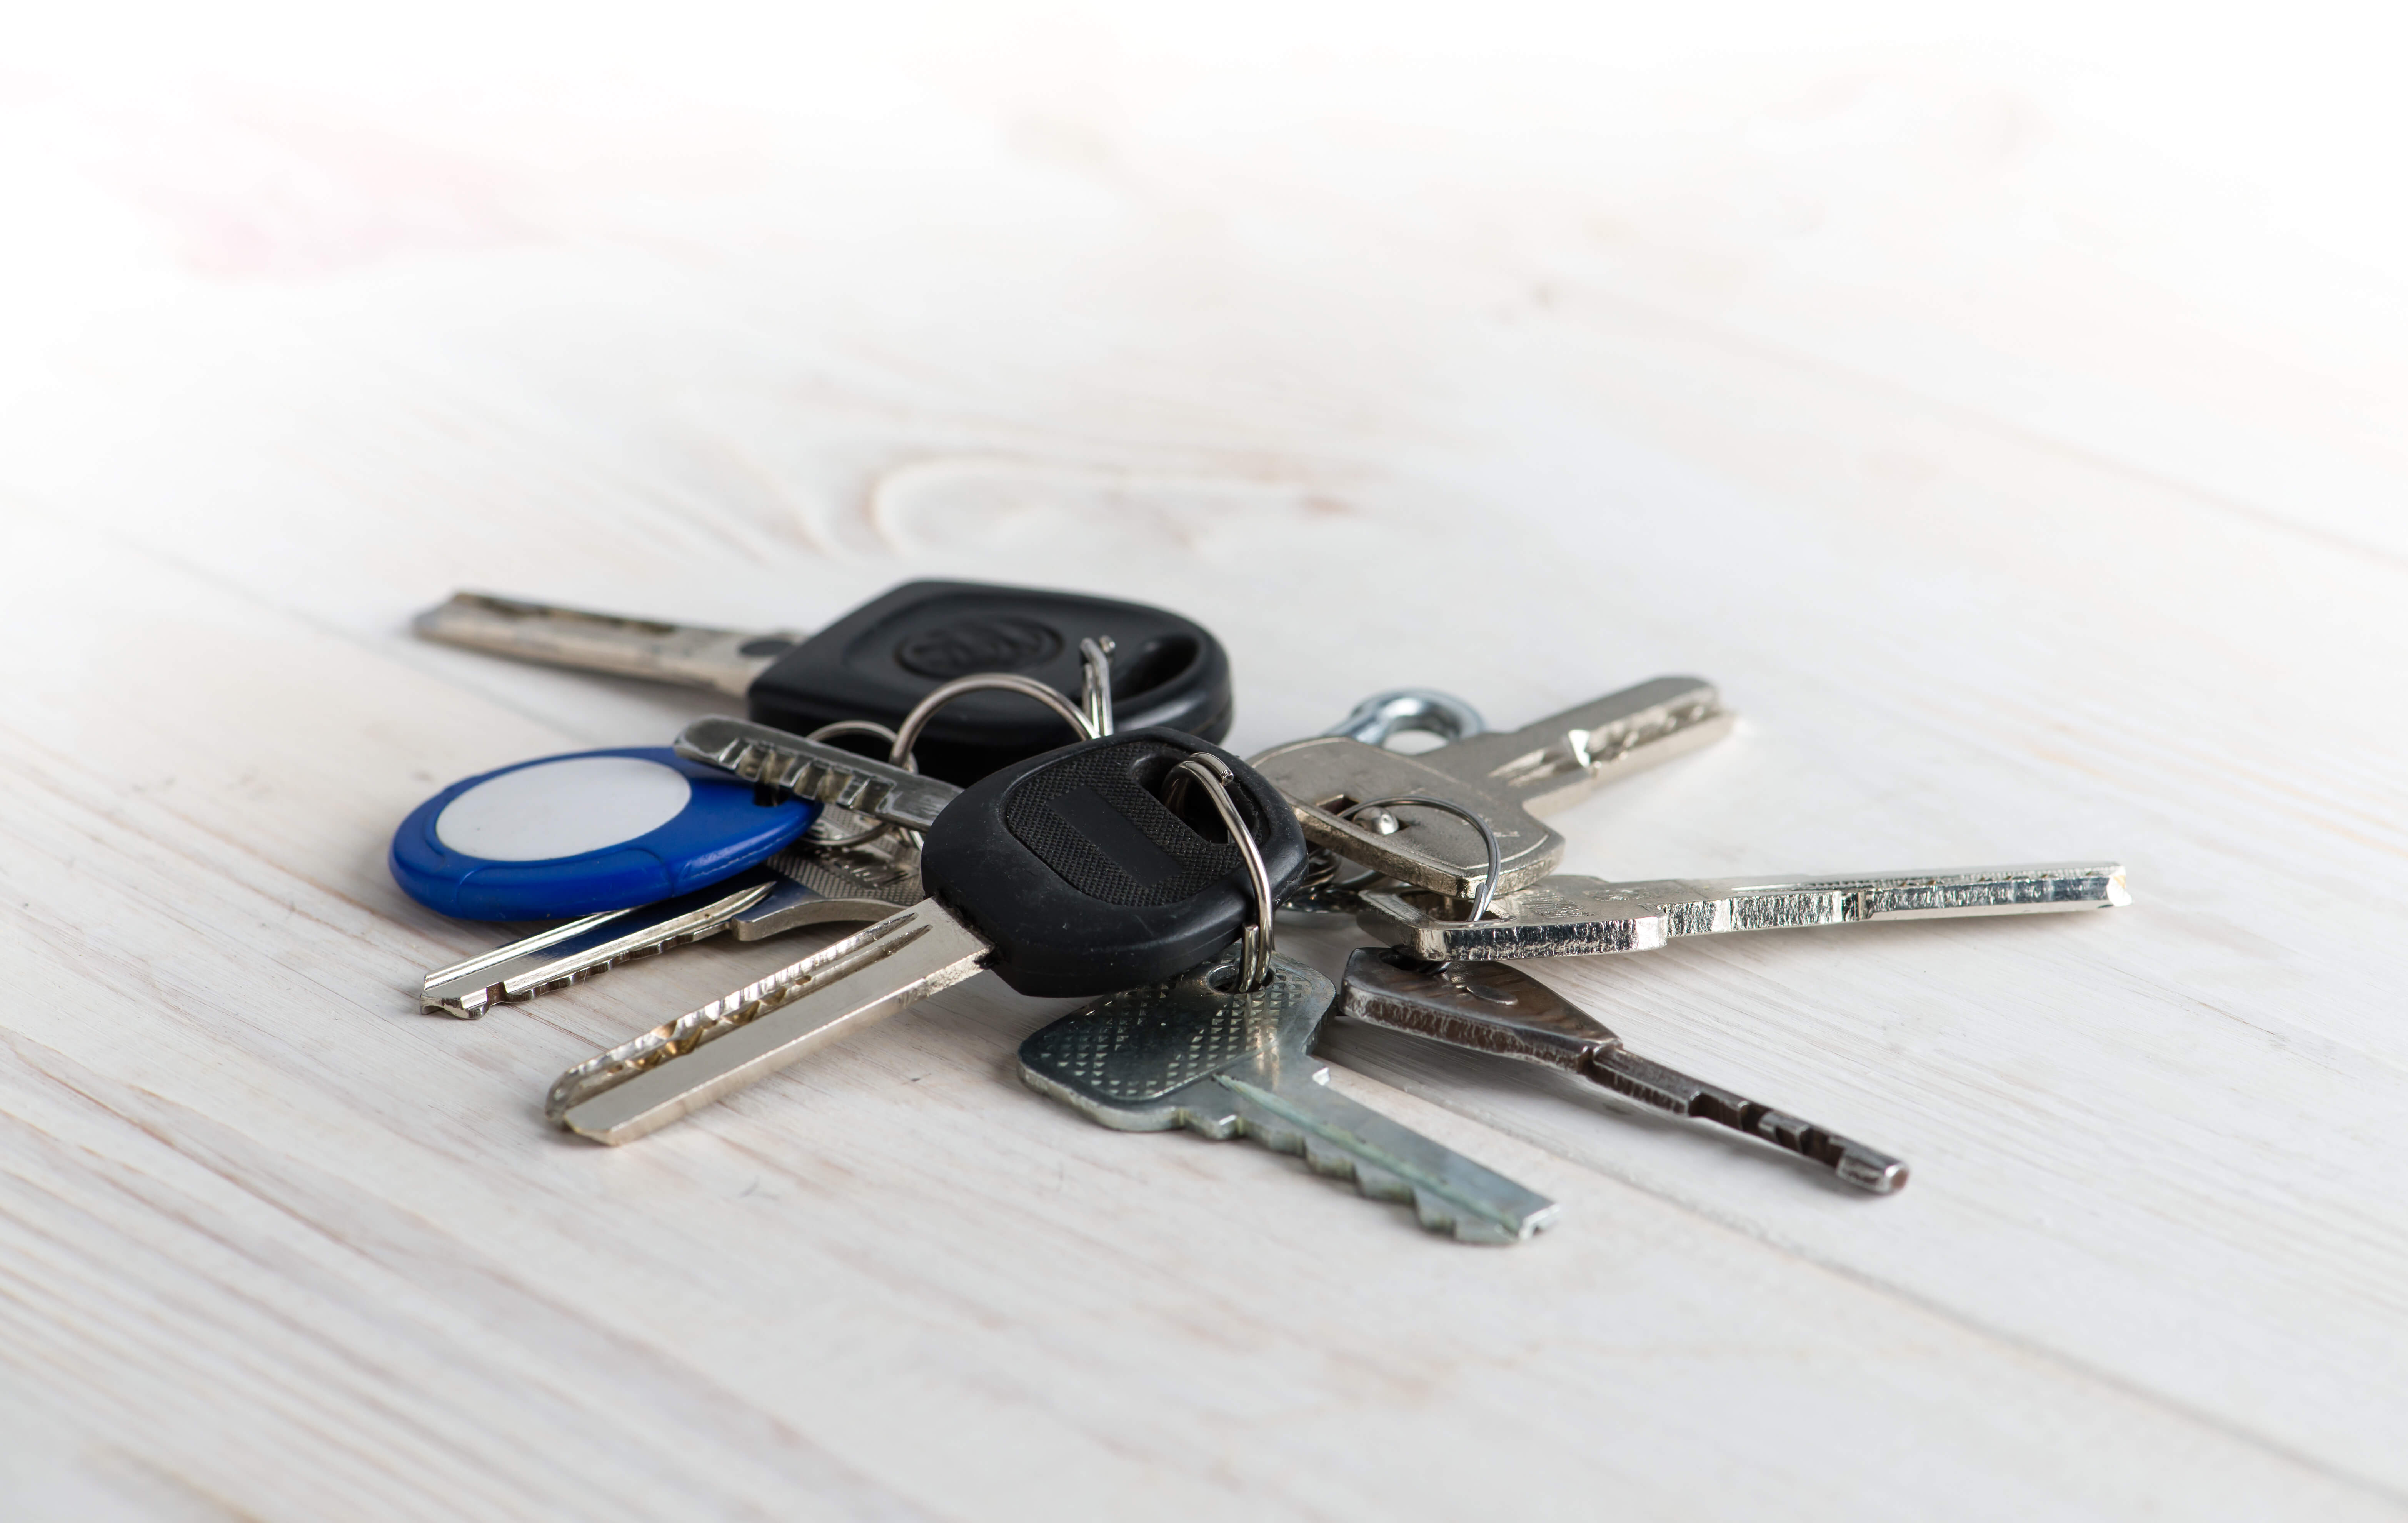 How to Get a Replacement Car Key without the Original